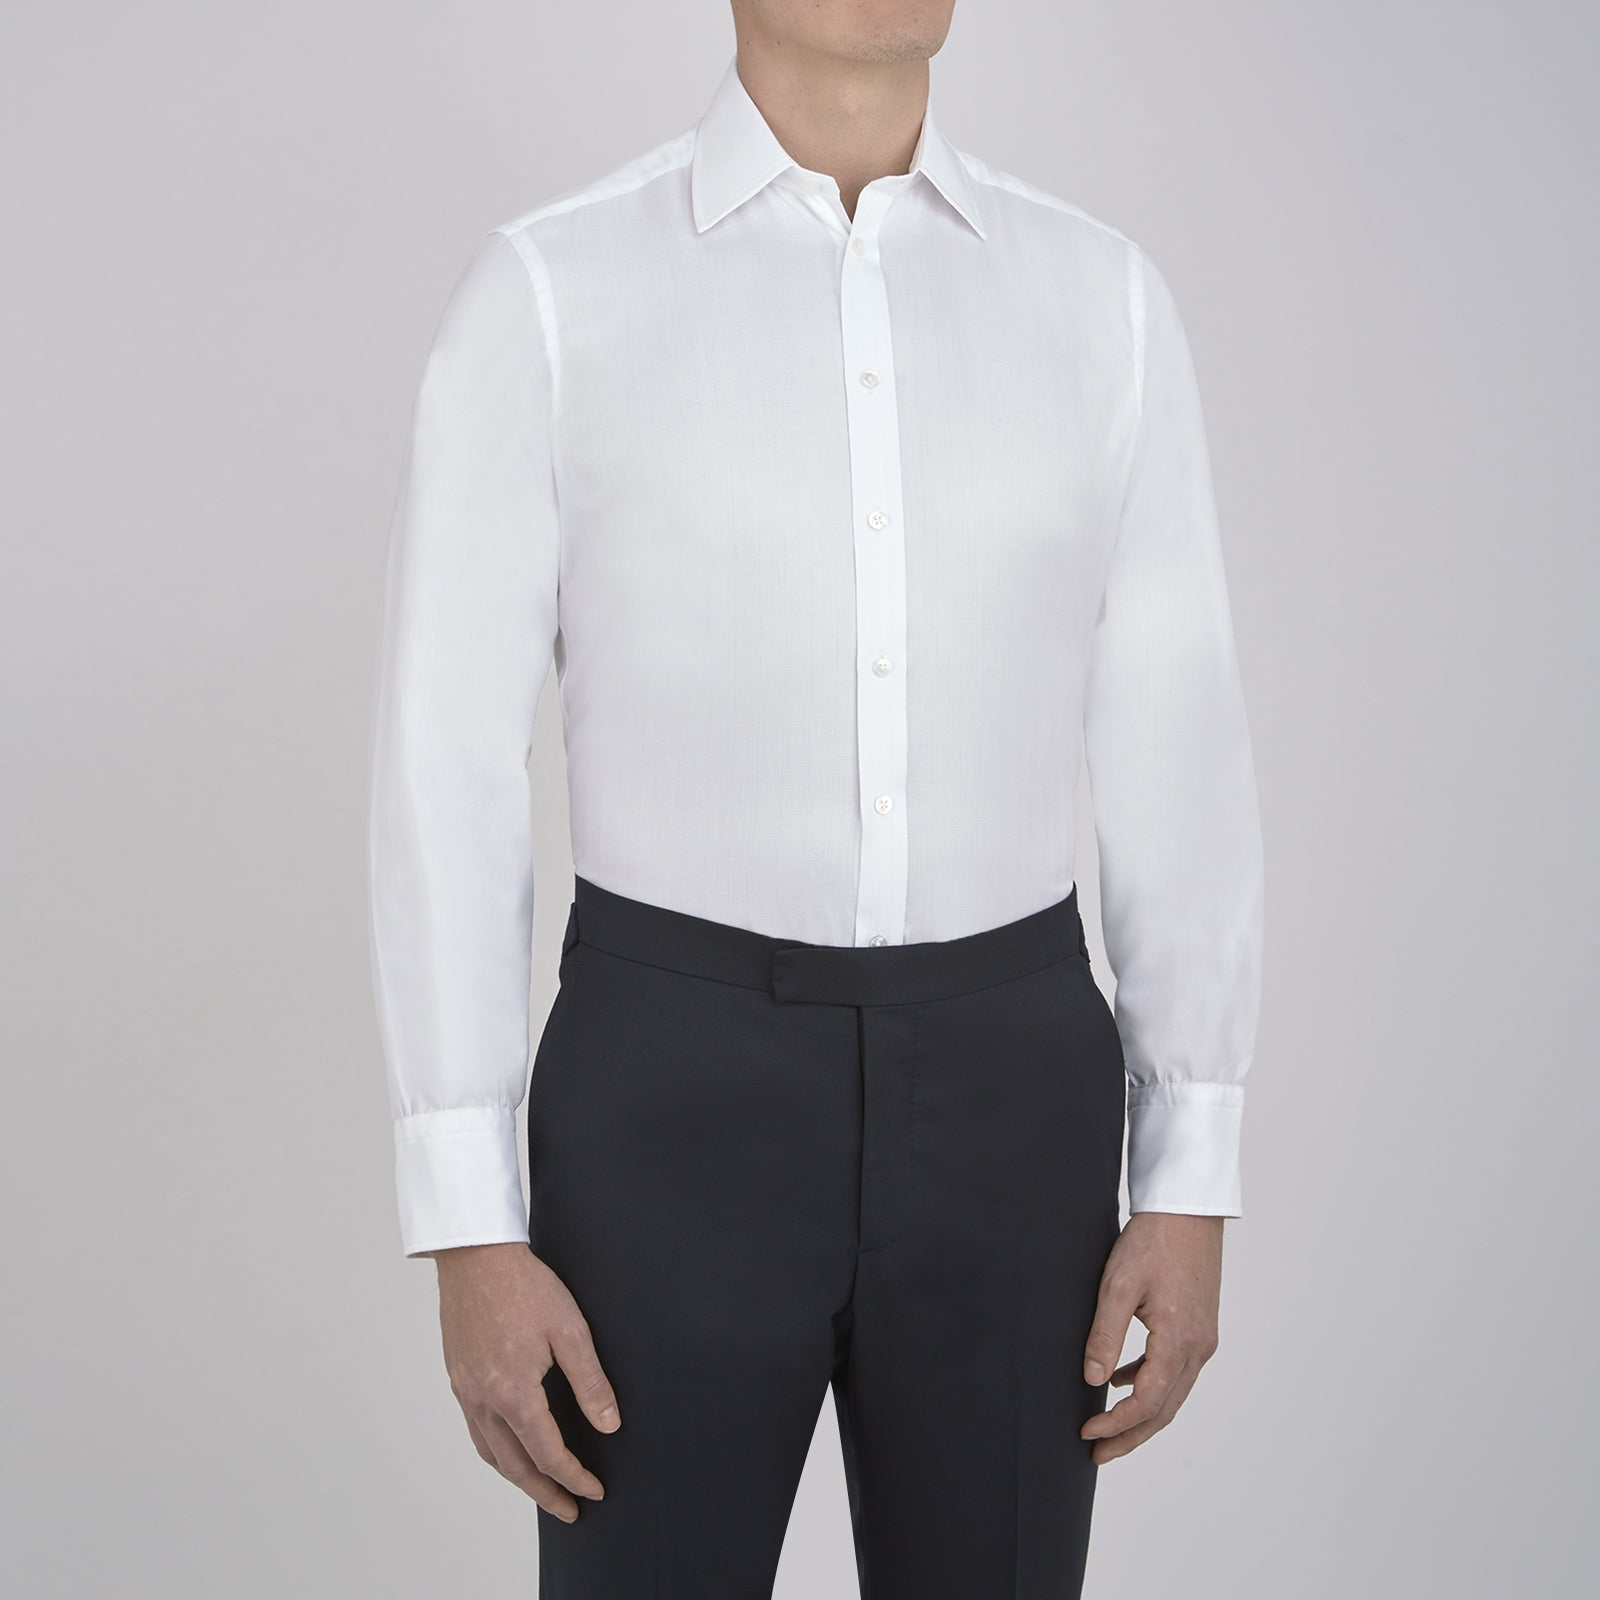 White Herringbone Superfine Cotton Shirt with T&A Collar and 3-Button Cuffs